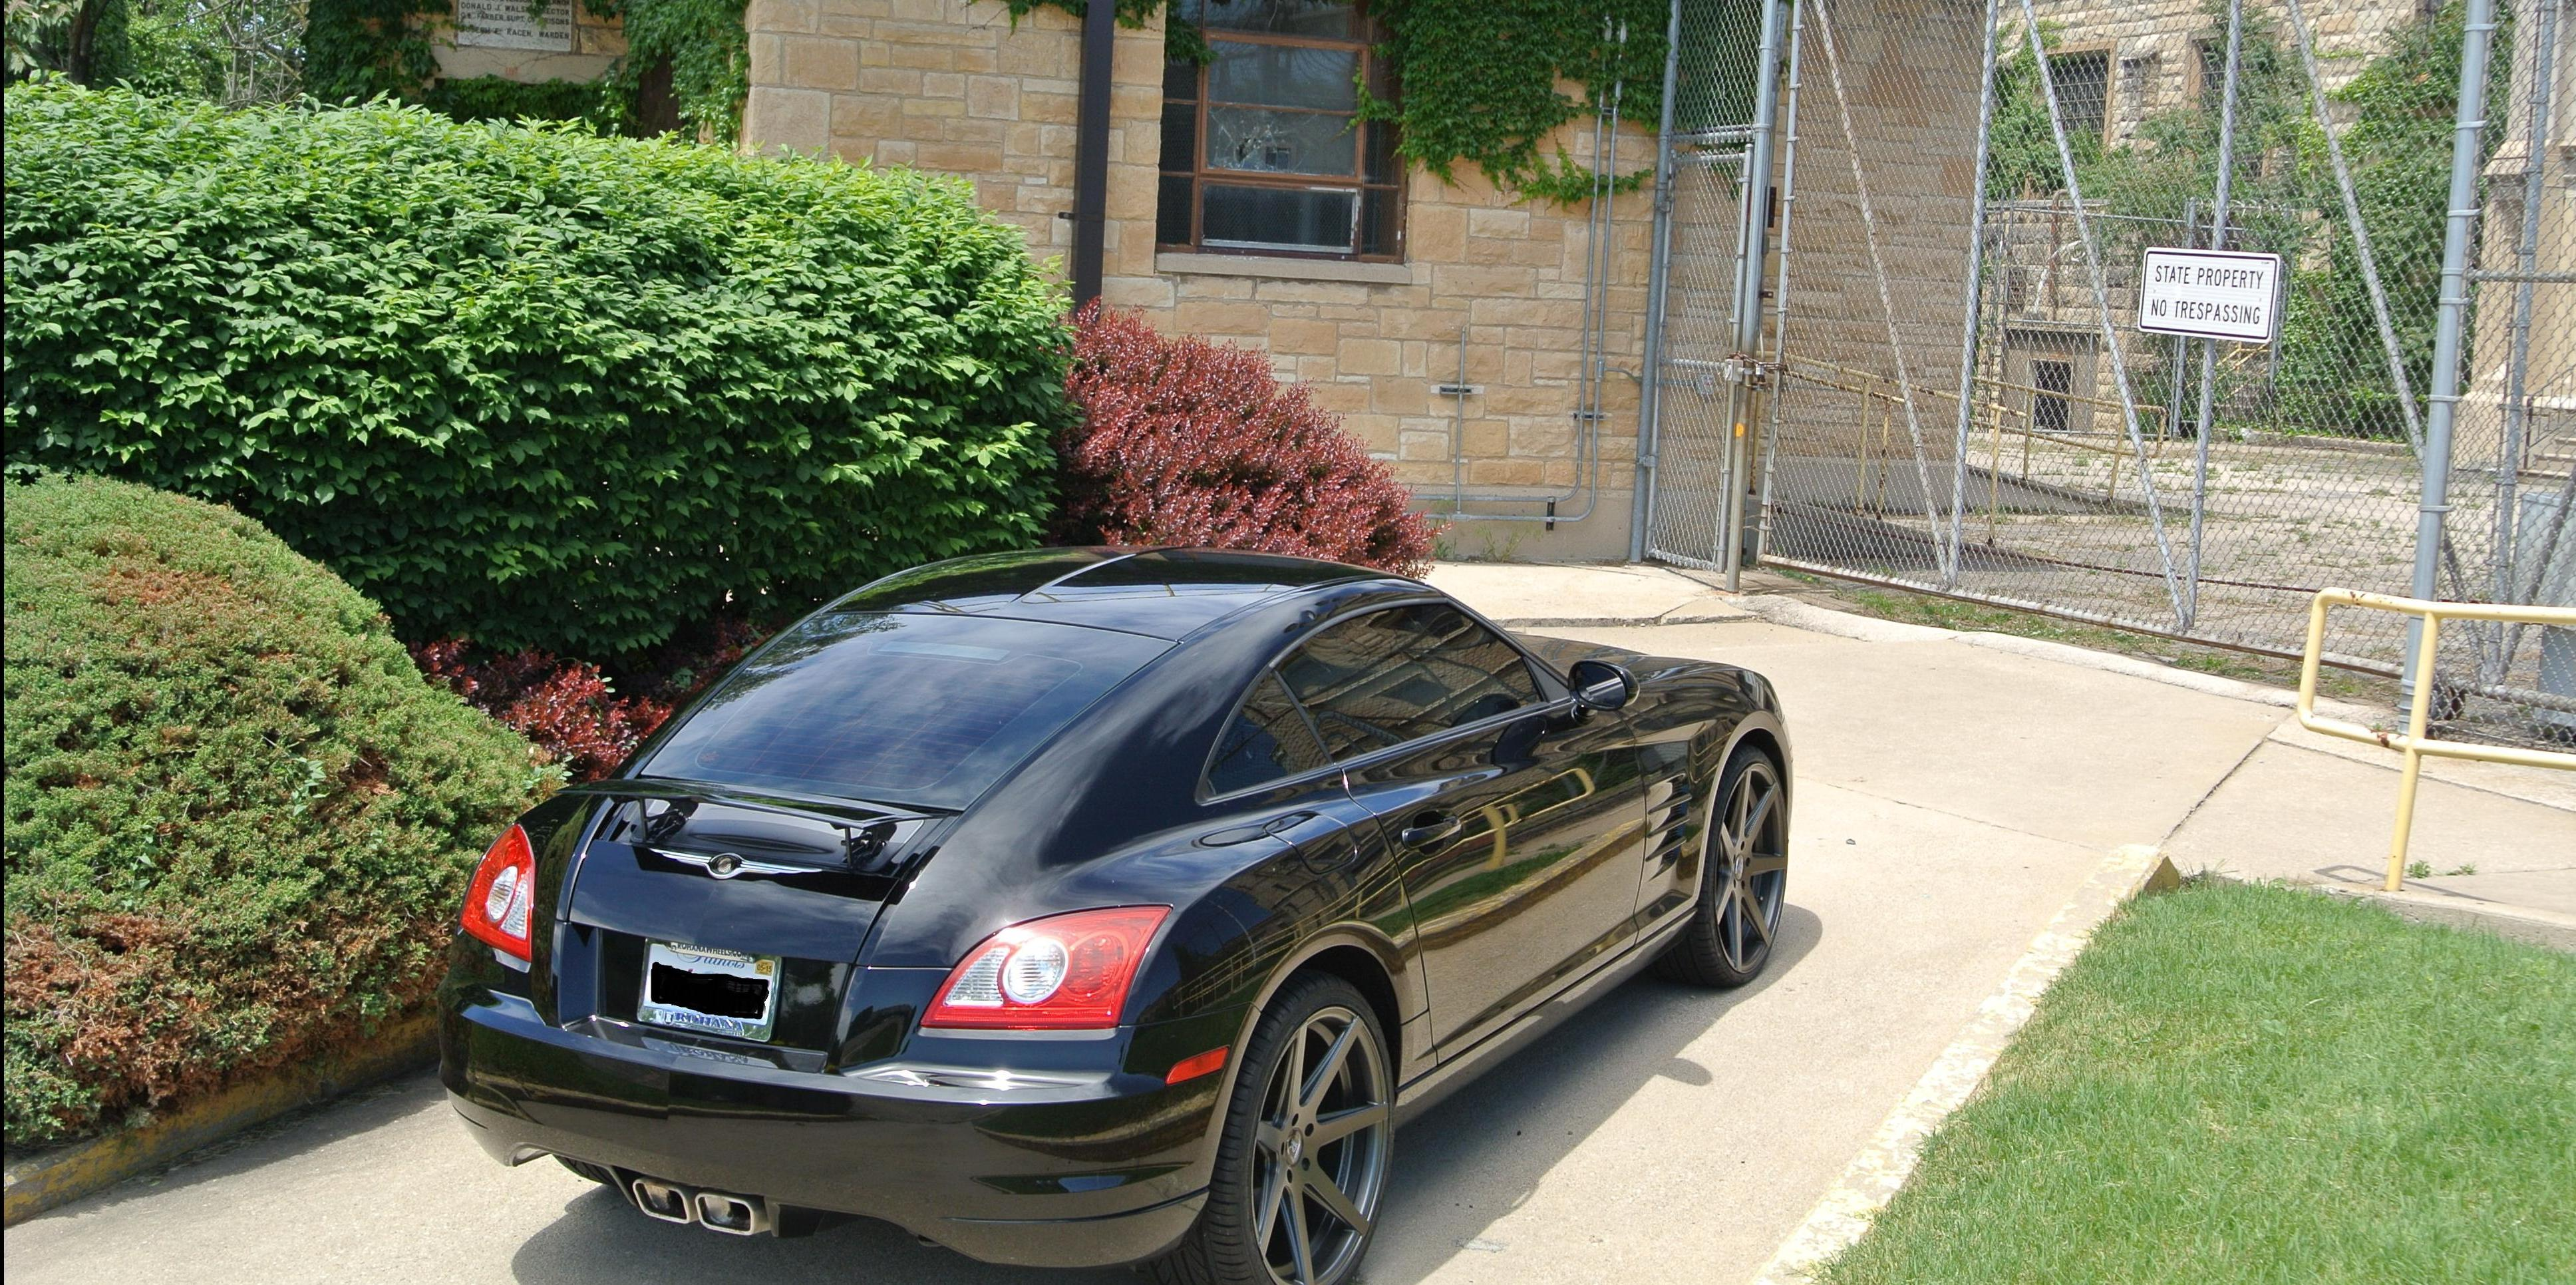 donjulio765's 2005 Chrysler Crossfire